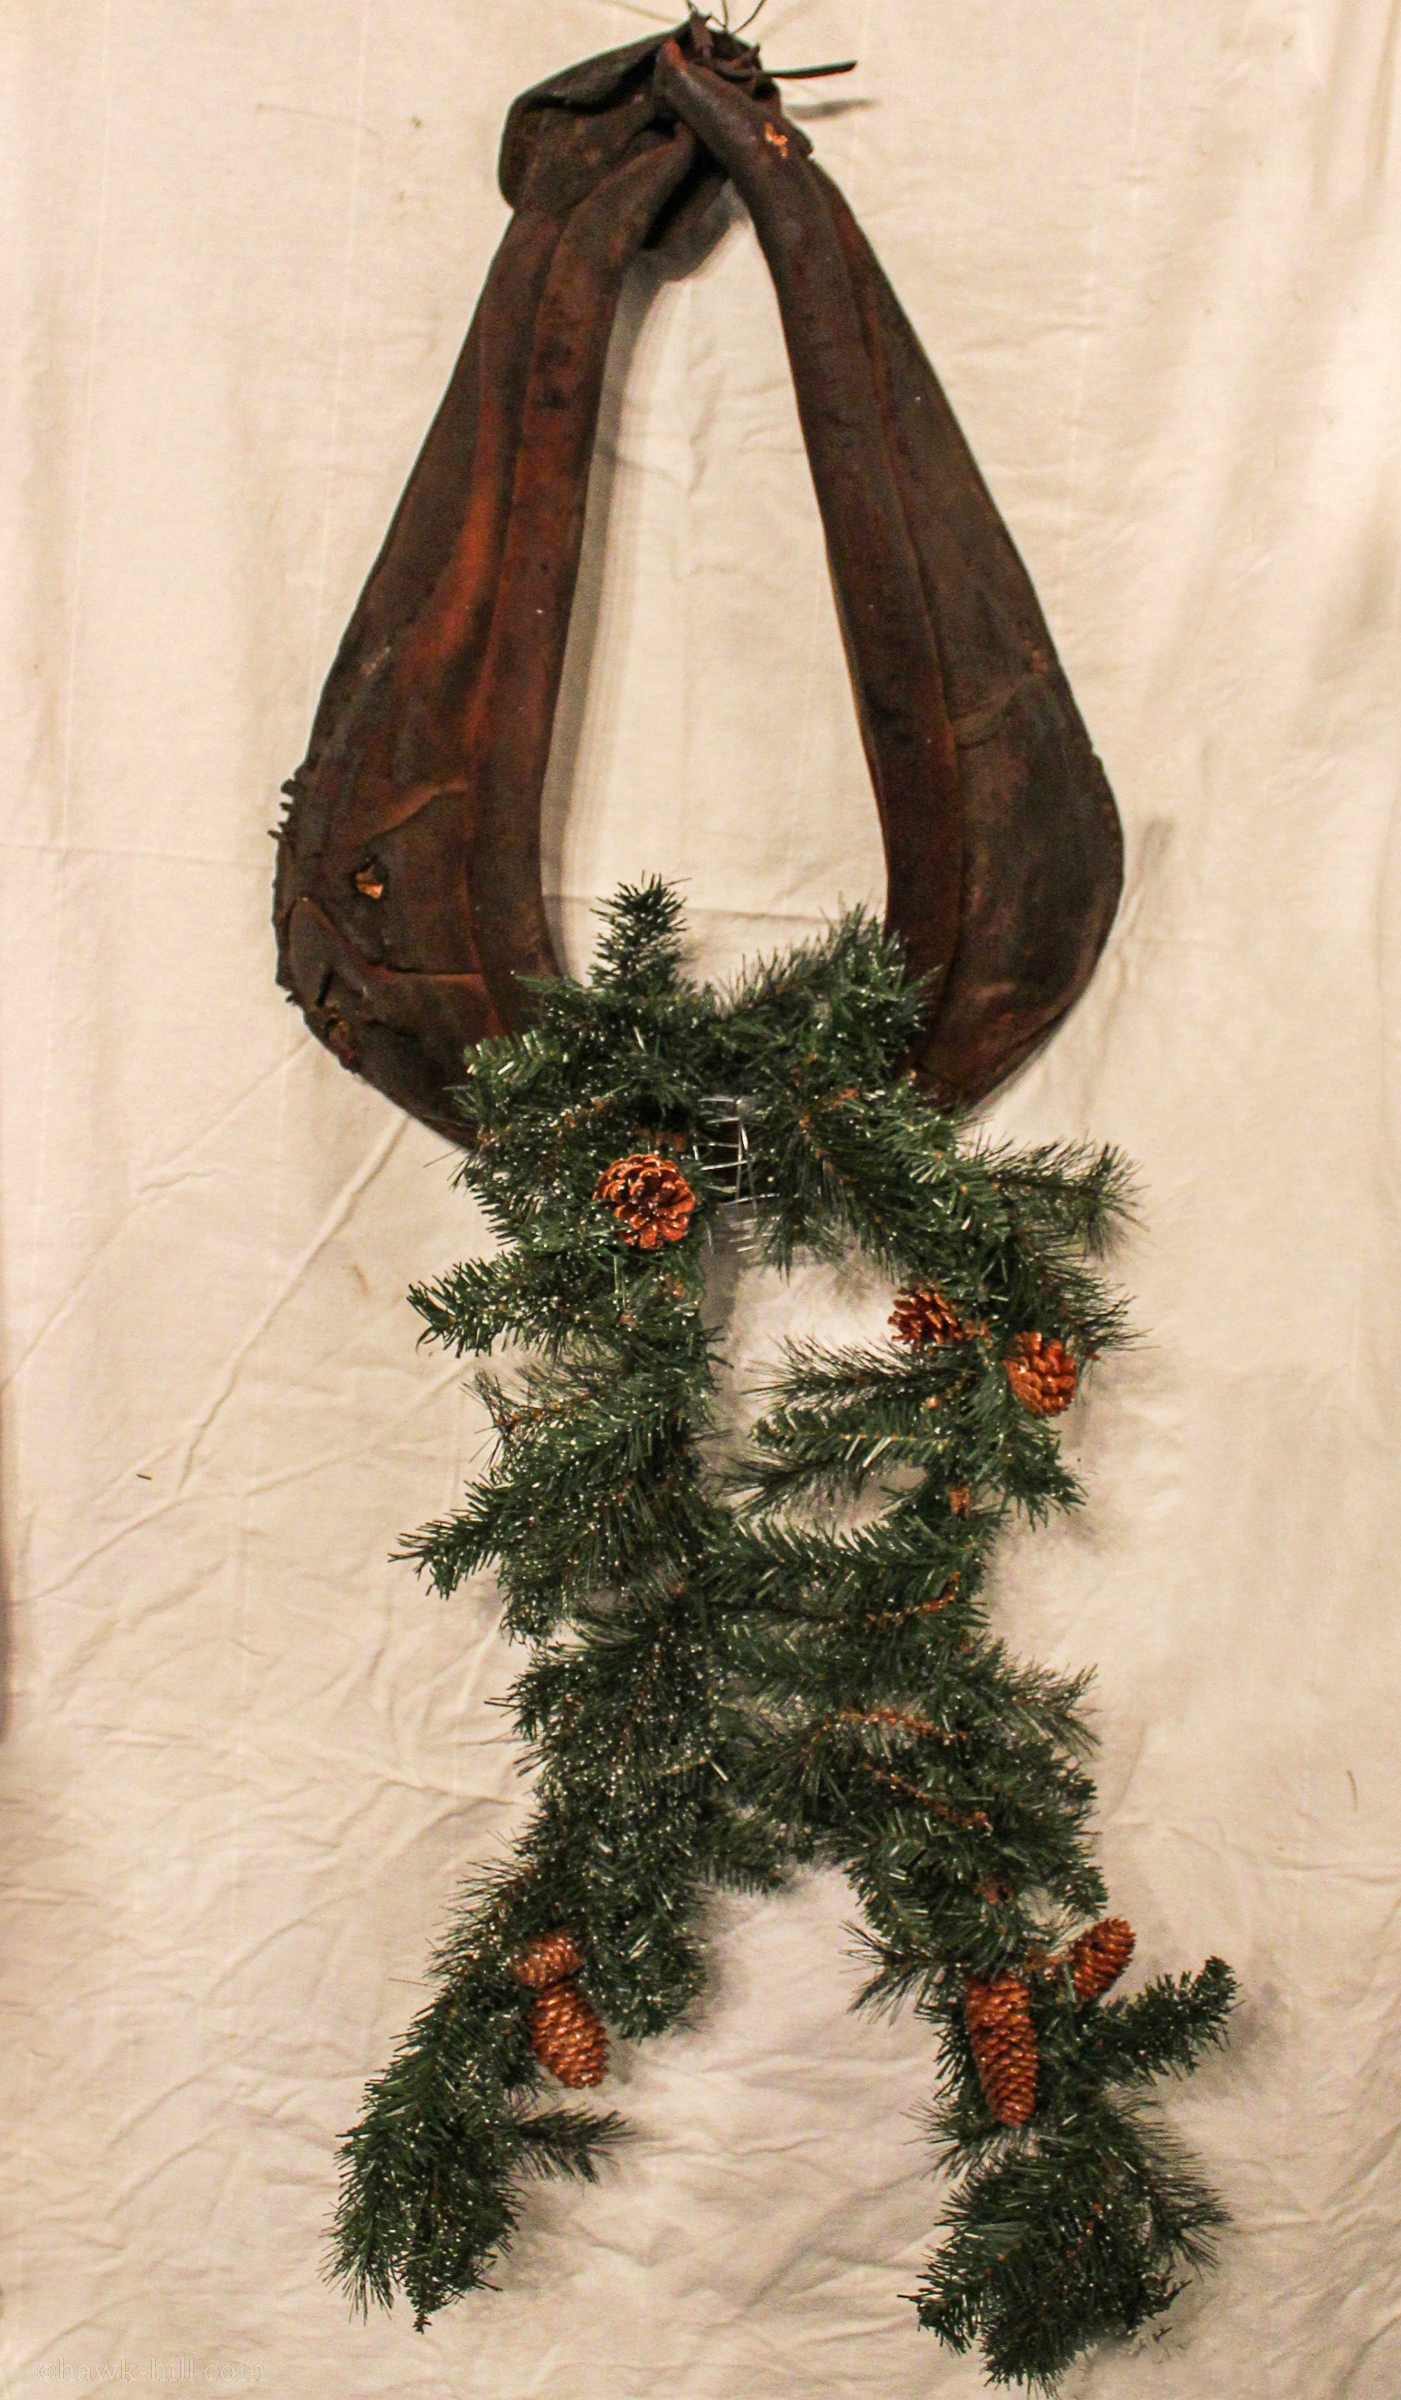 Horse harness with garland added and crossed.